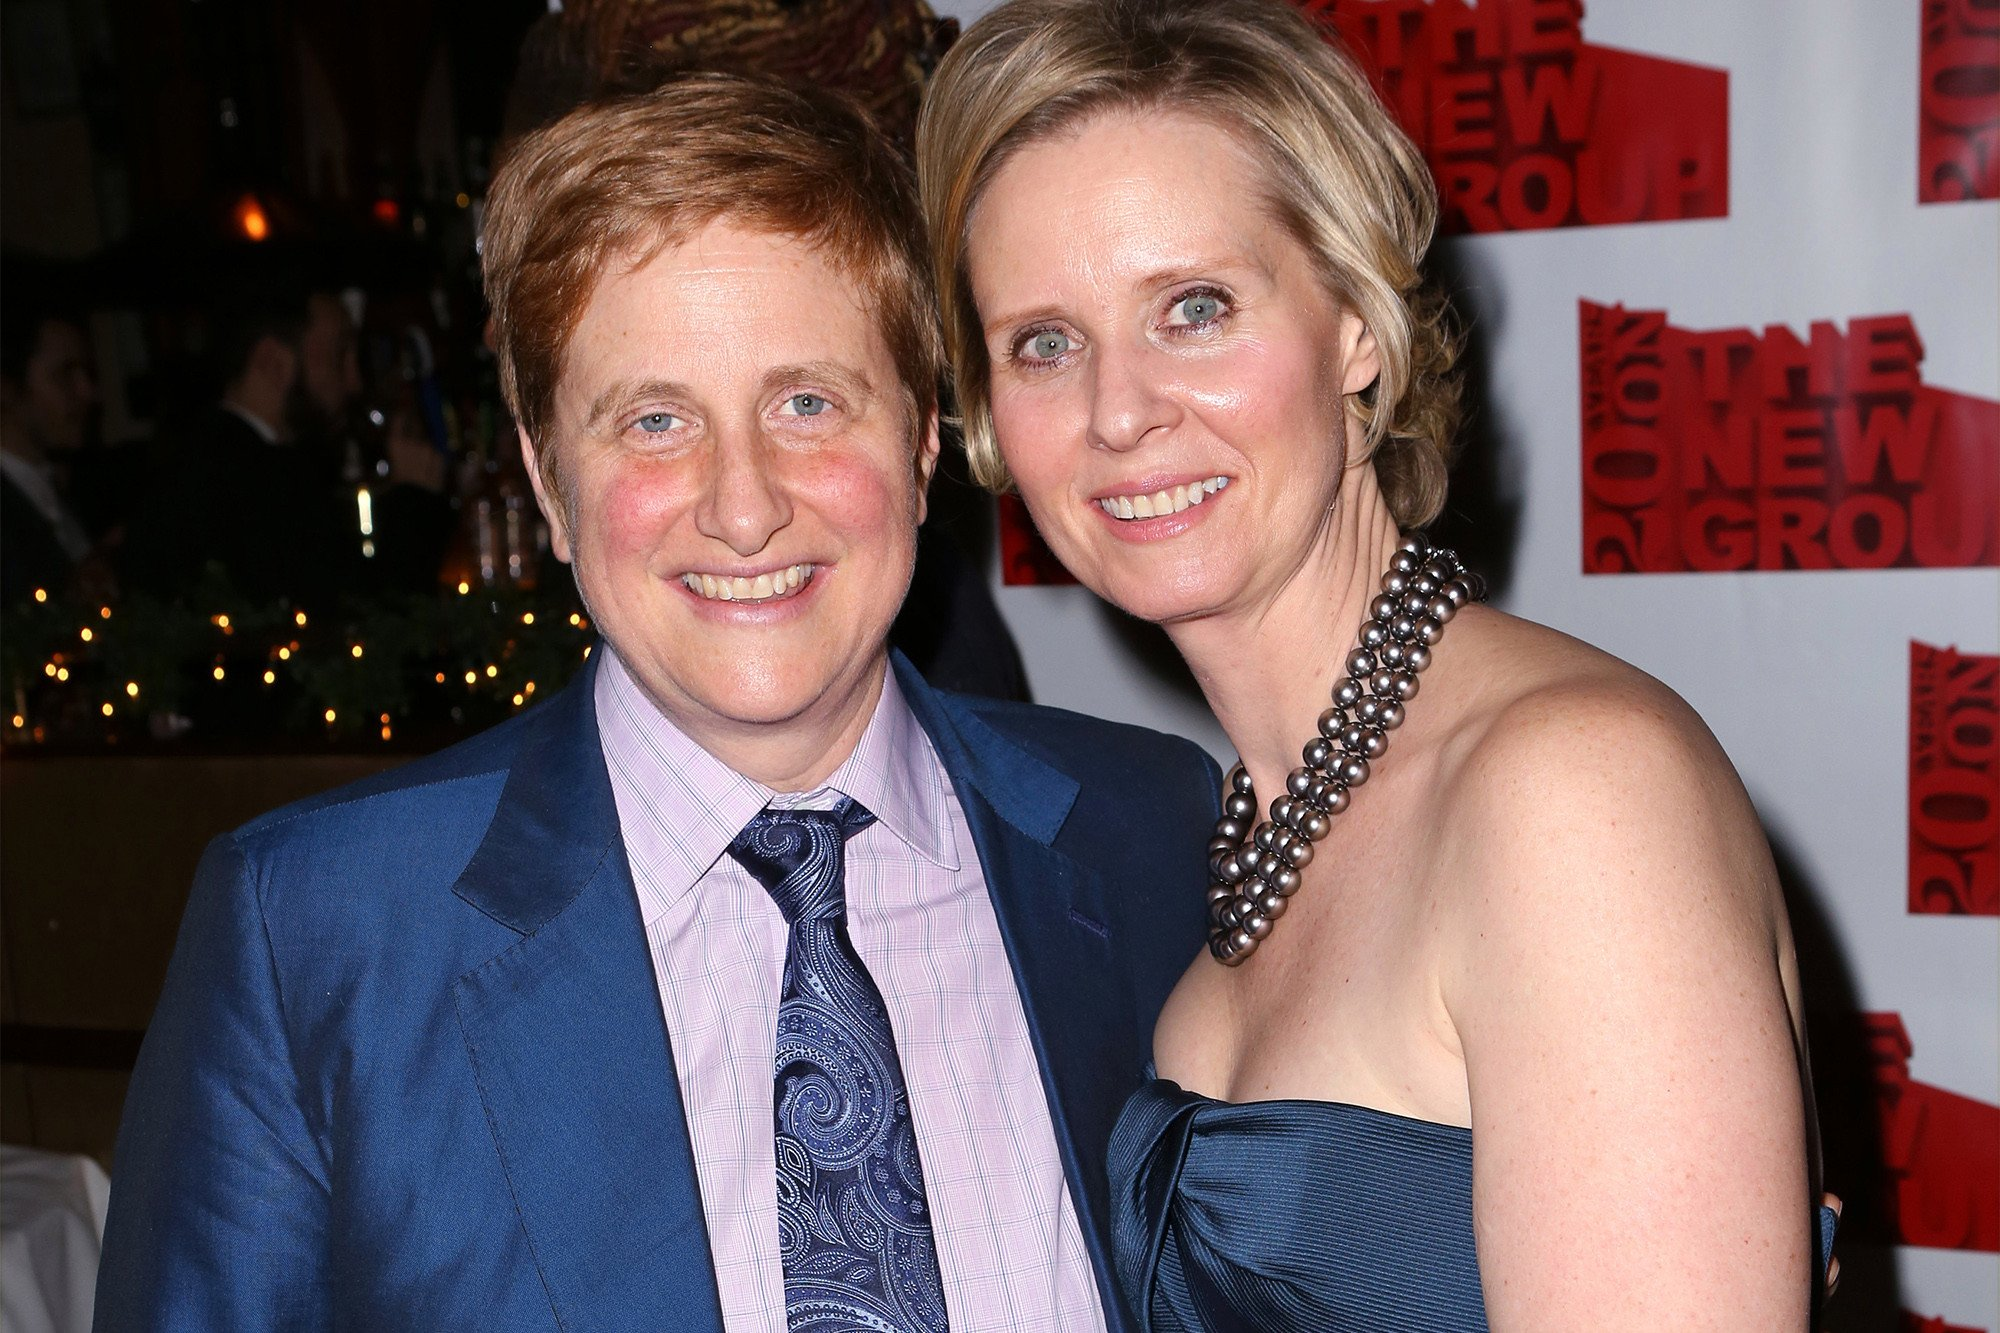 Cynthia Nixon reveals tax returns